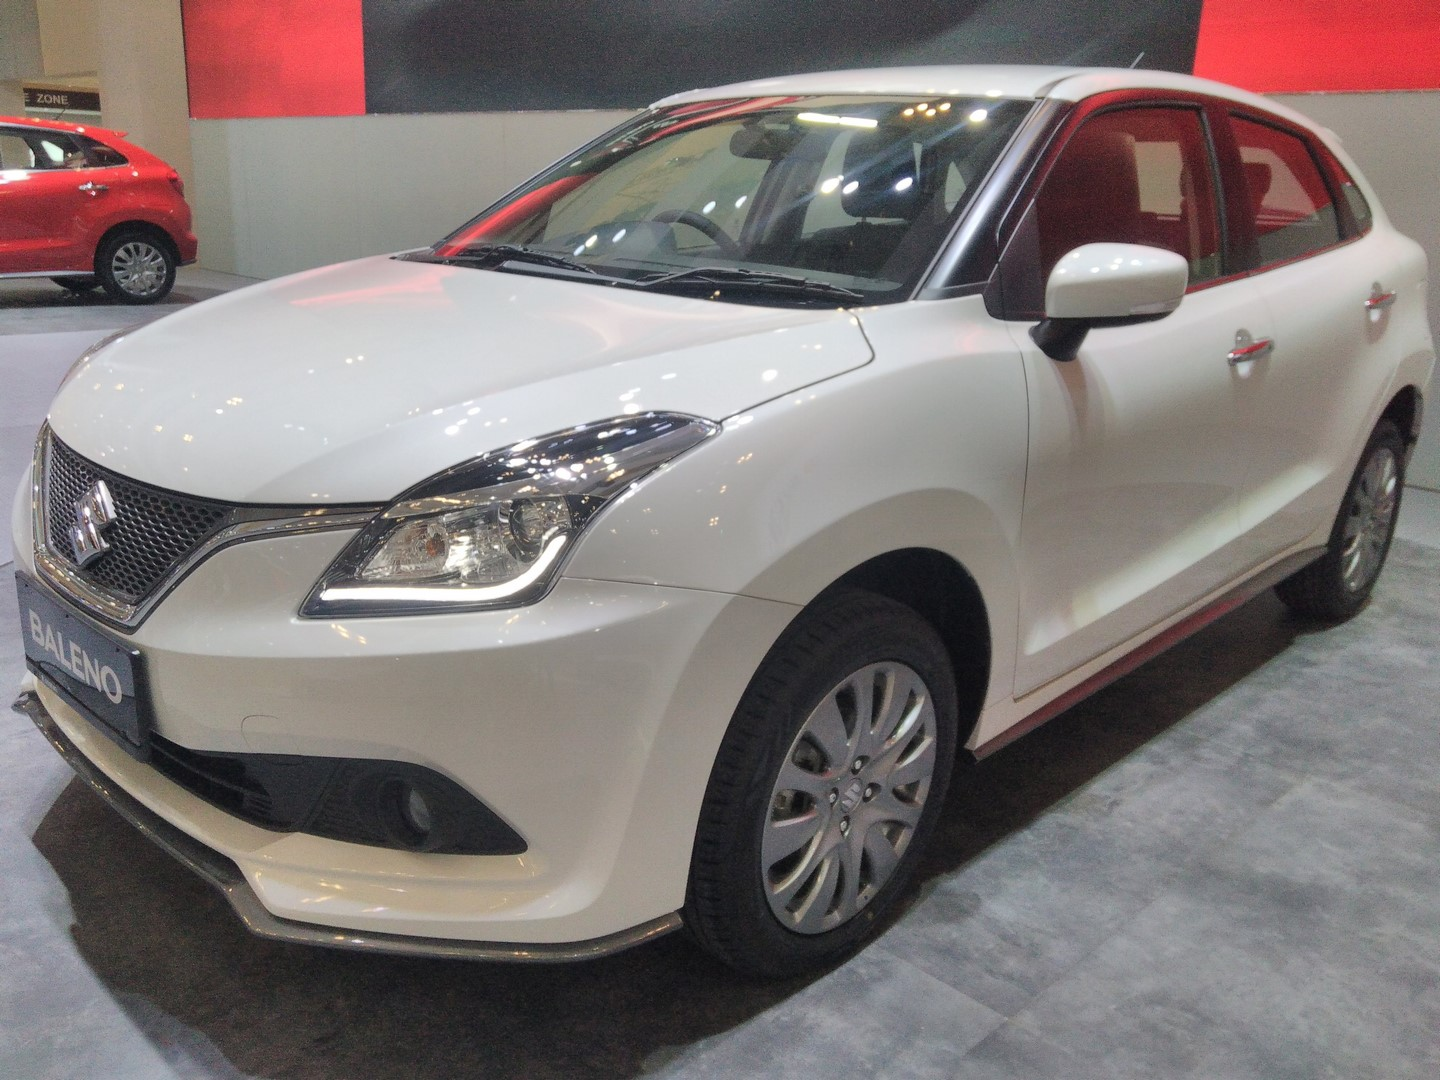 Suzuki Baleno at GIIAS 2017